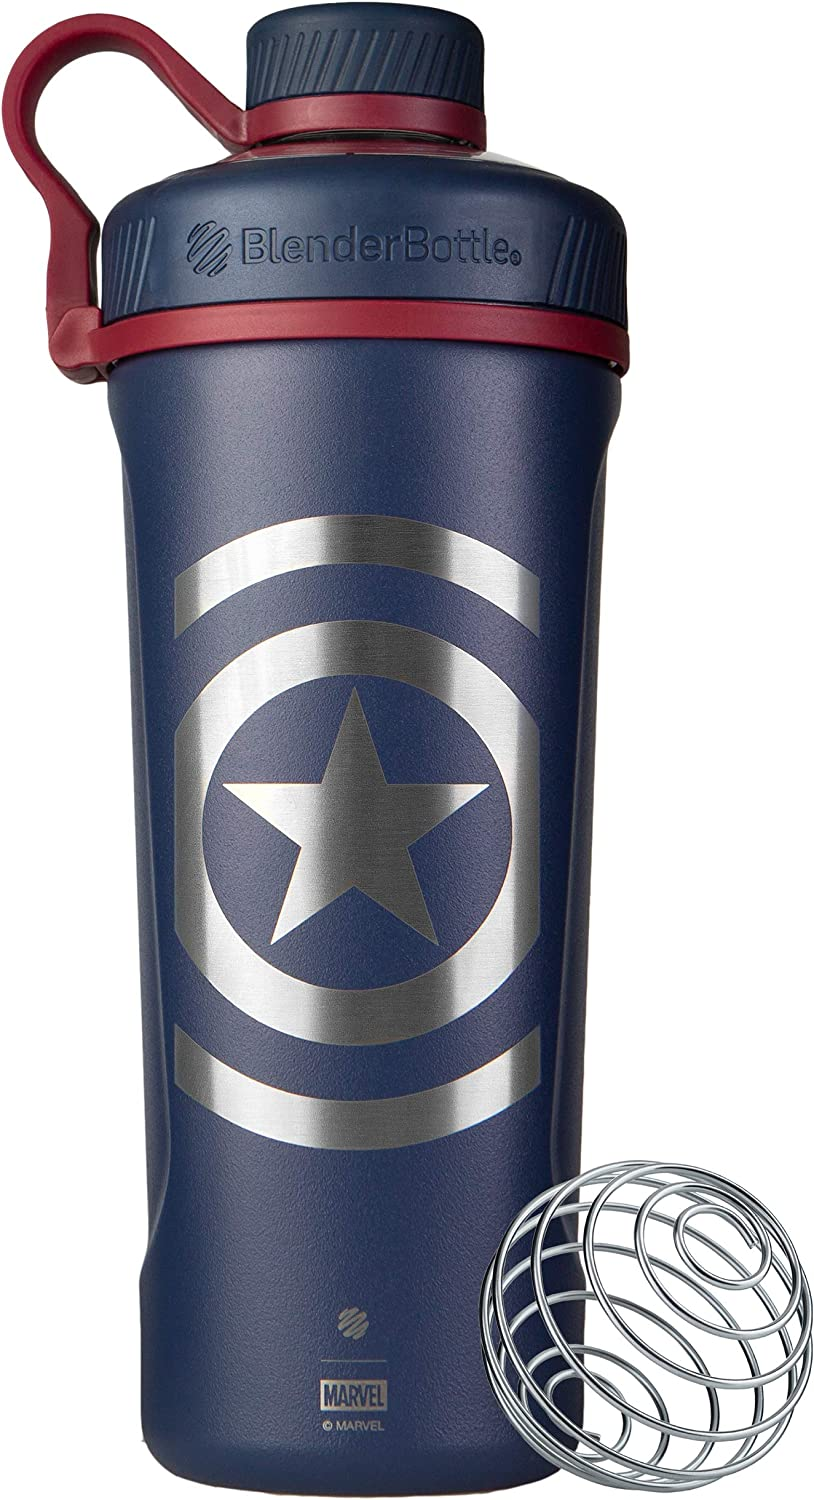 BlenderBottle C03874 Radian Insulated Stainless Steel Shaker Bottle, 26oz, Captain America Shield